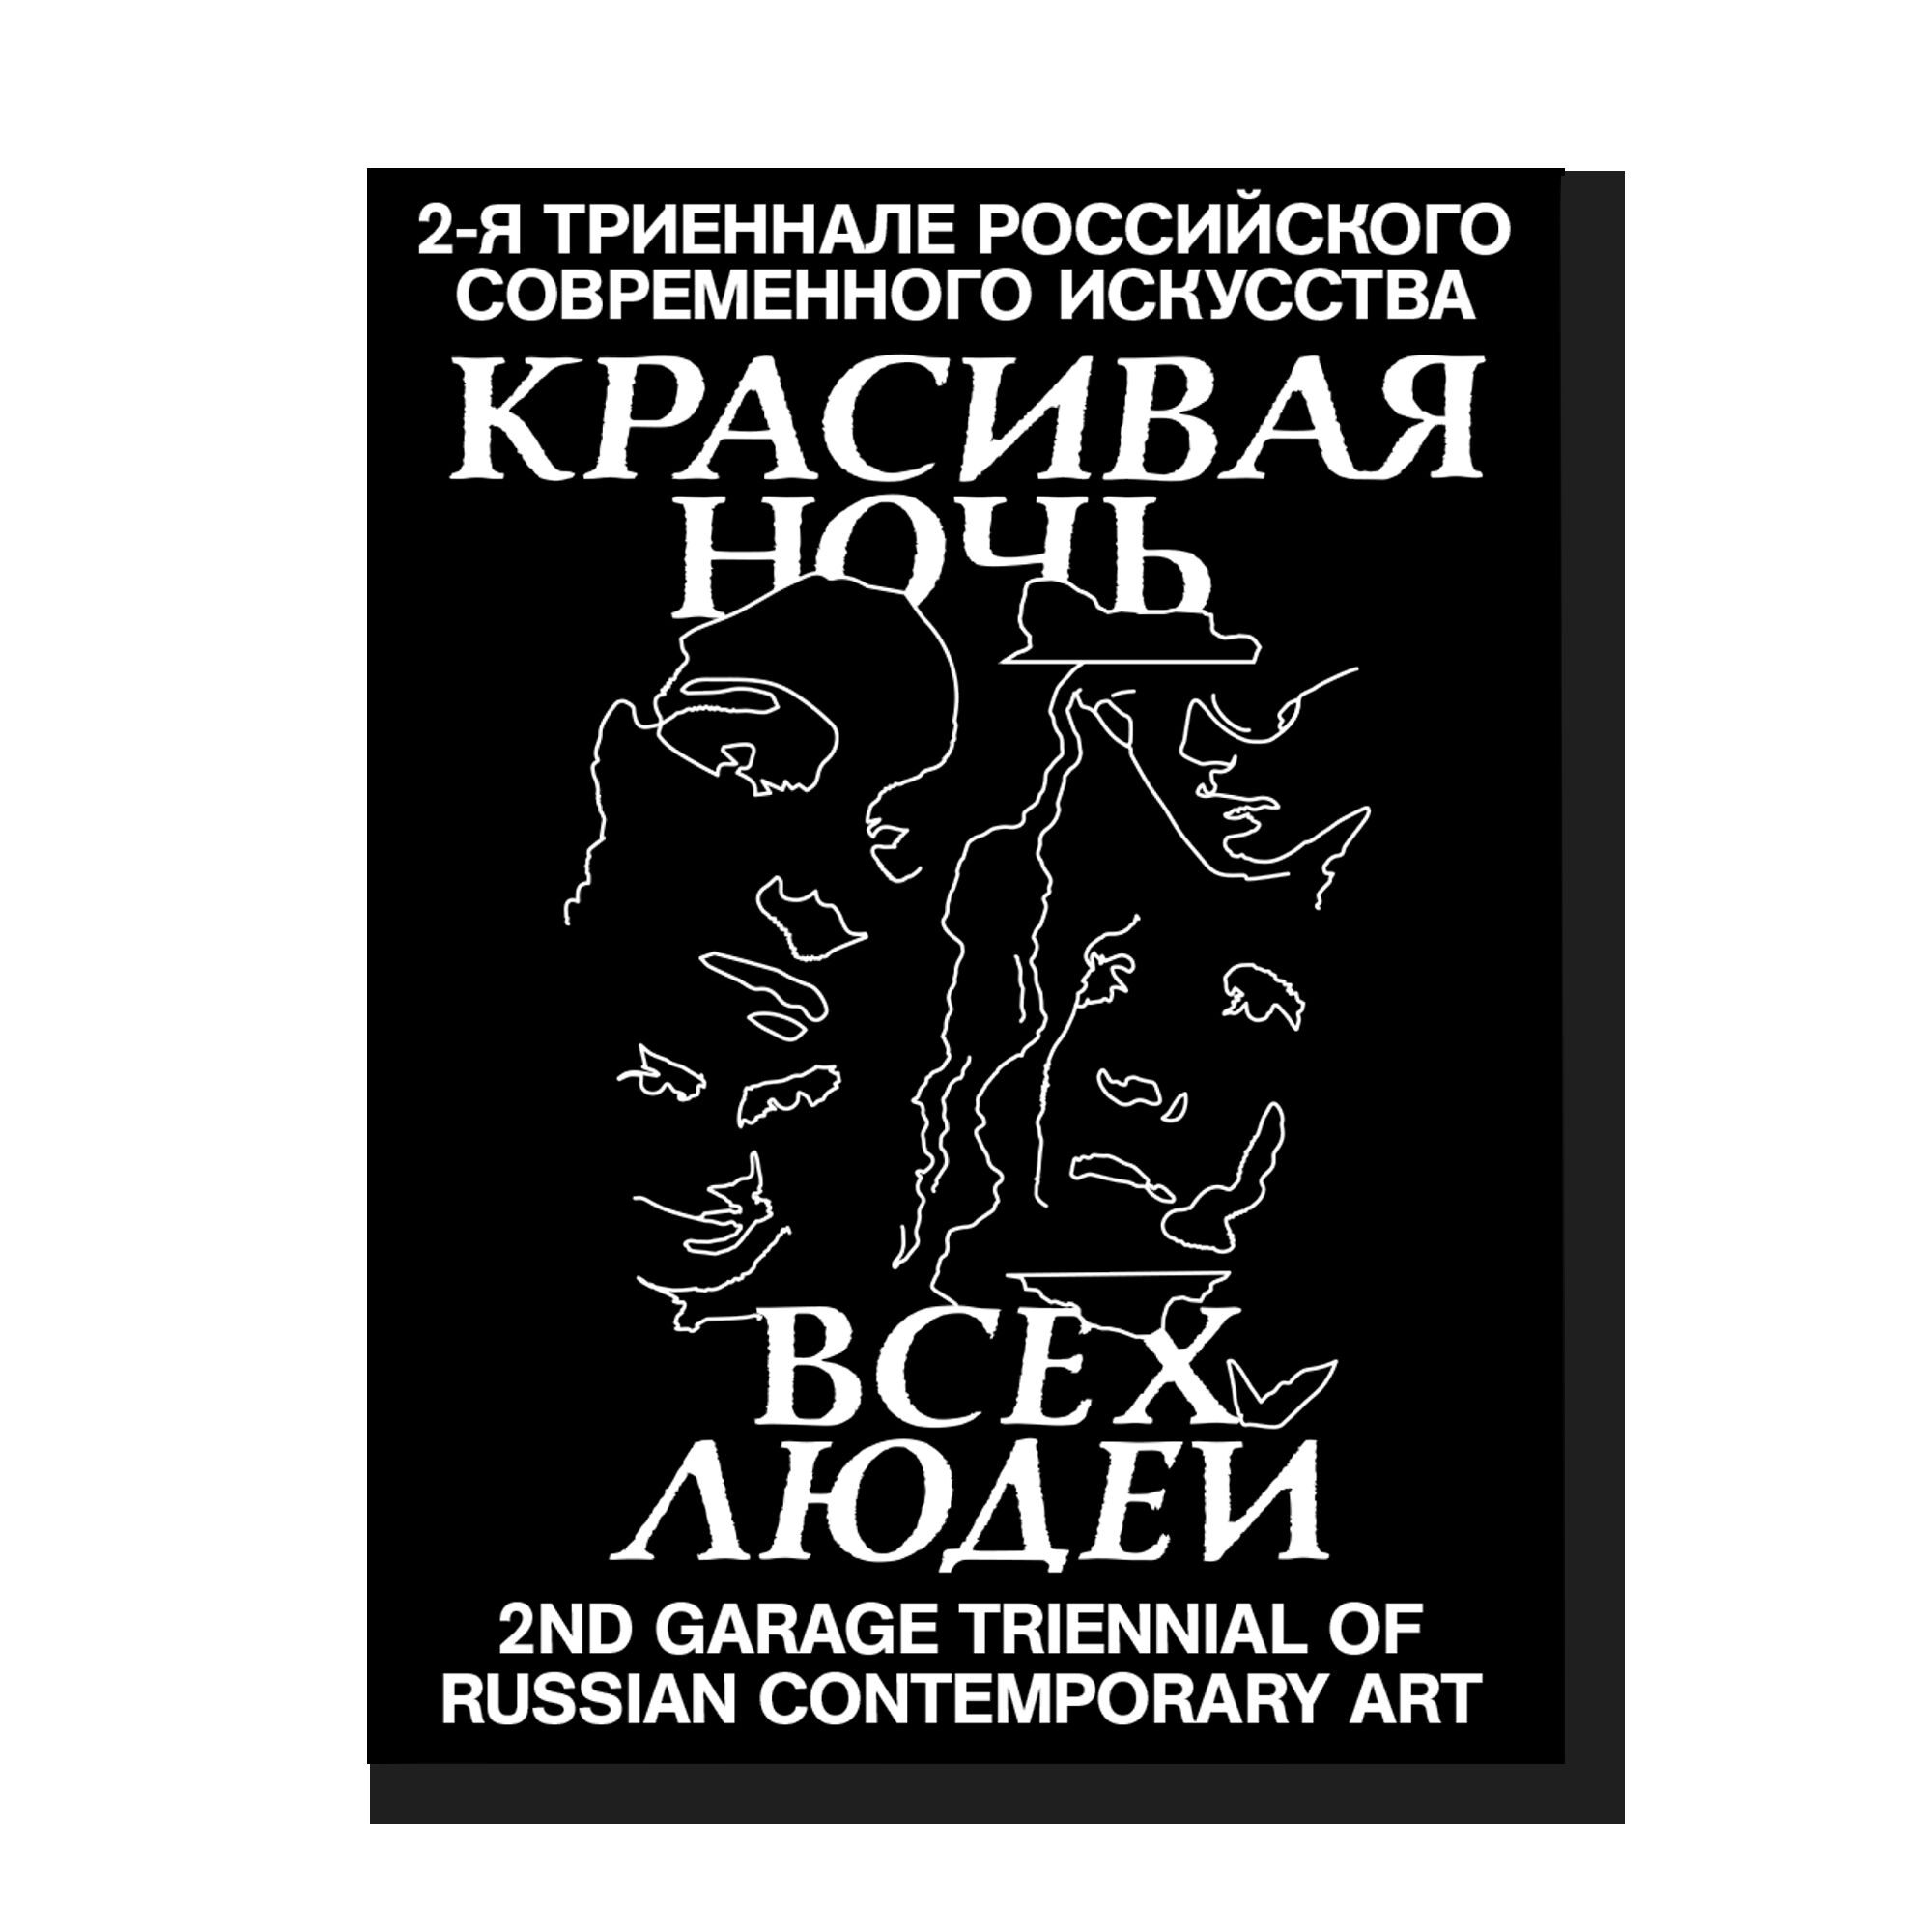 2nd Garage Triennial of Russian Contemporary Art Guide